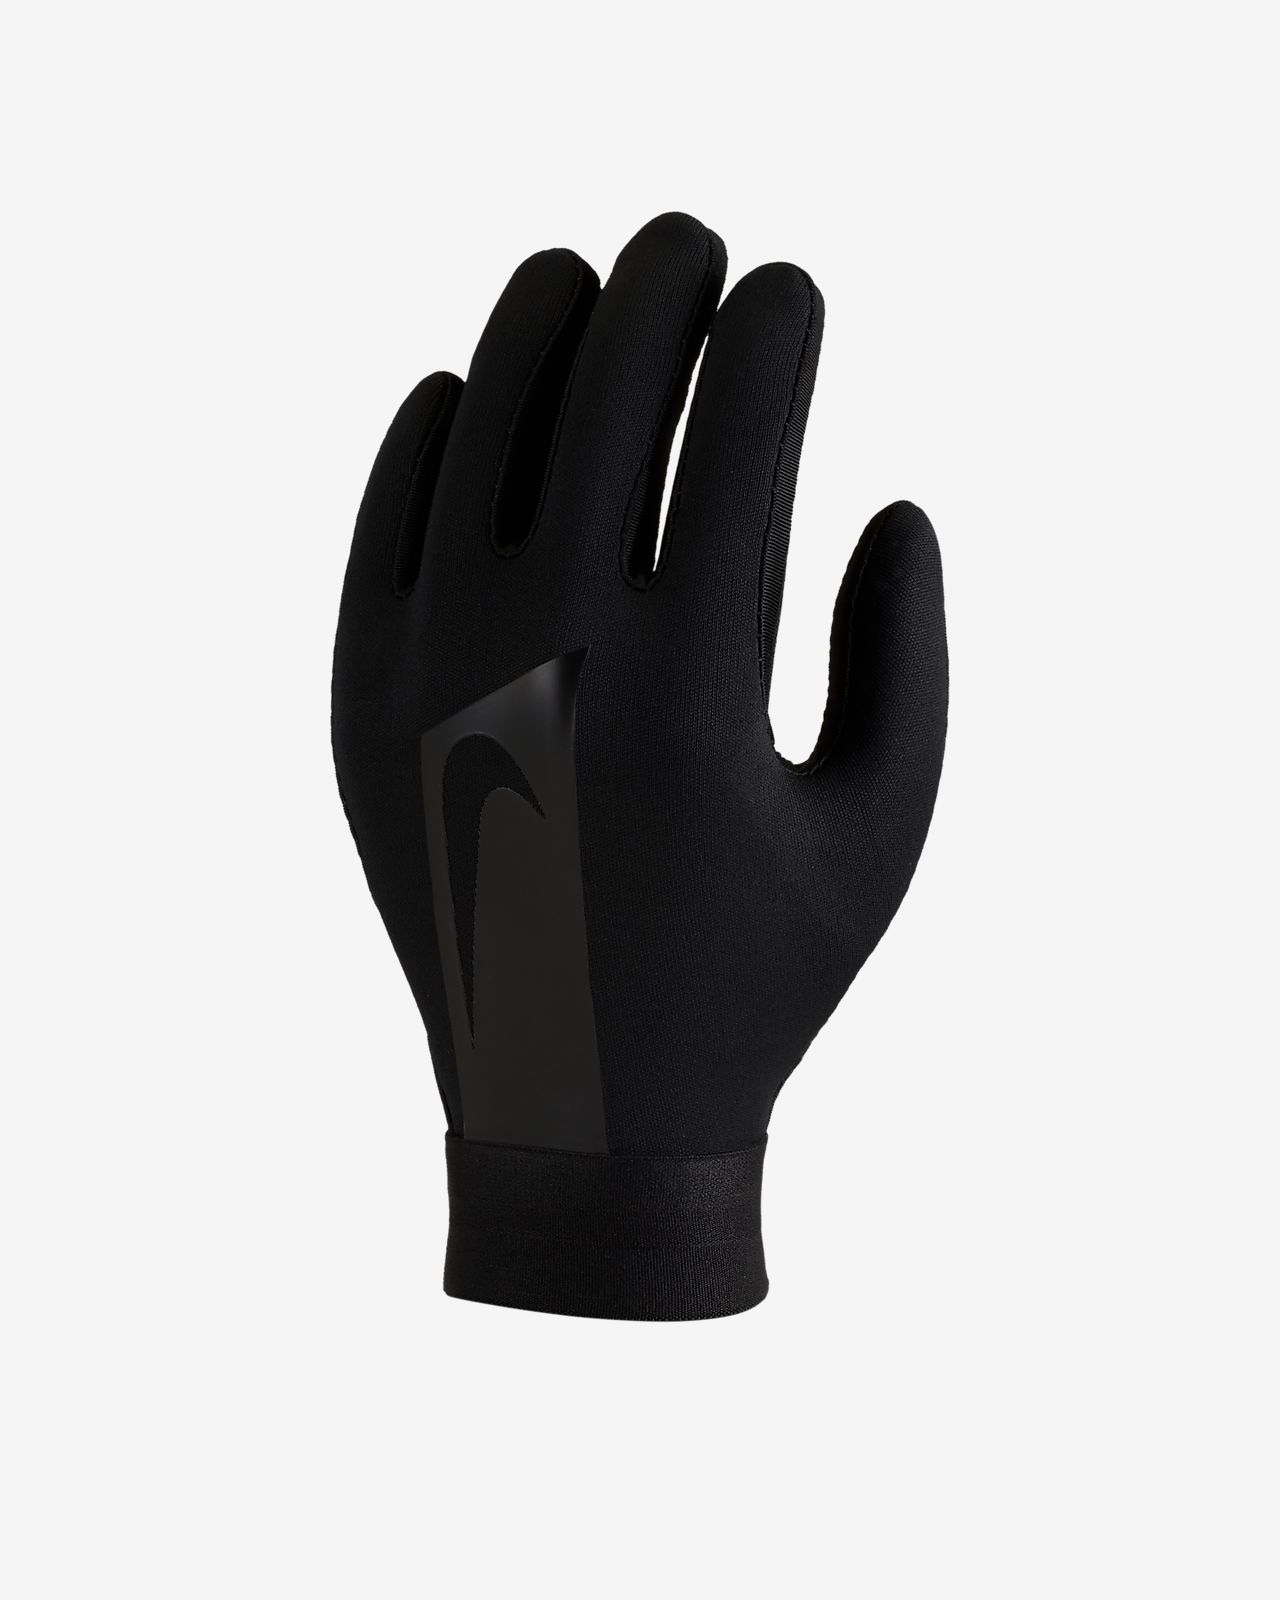 wholesale online buy sale cheapest price Gants de football Nike HyperWarm Academy pour Enfant